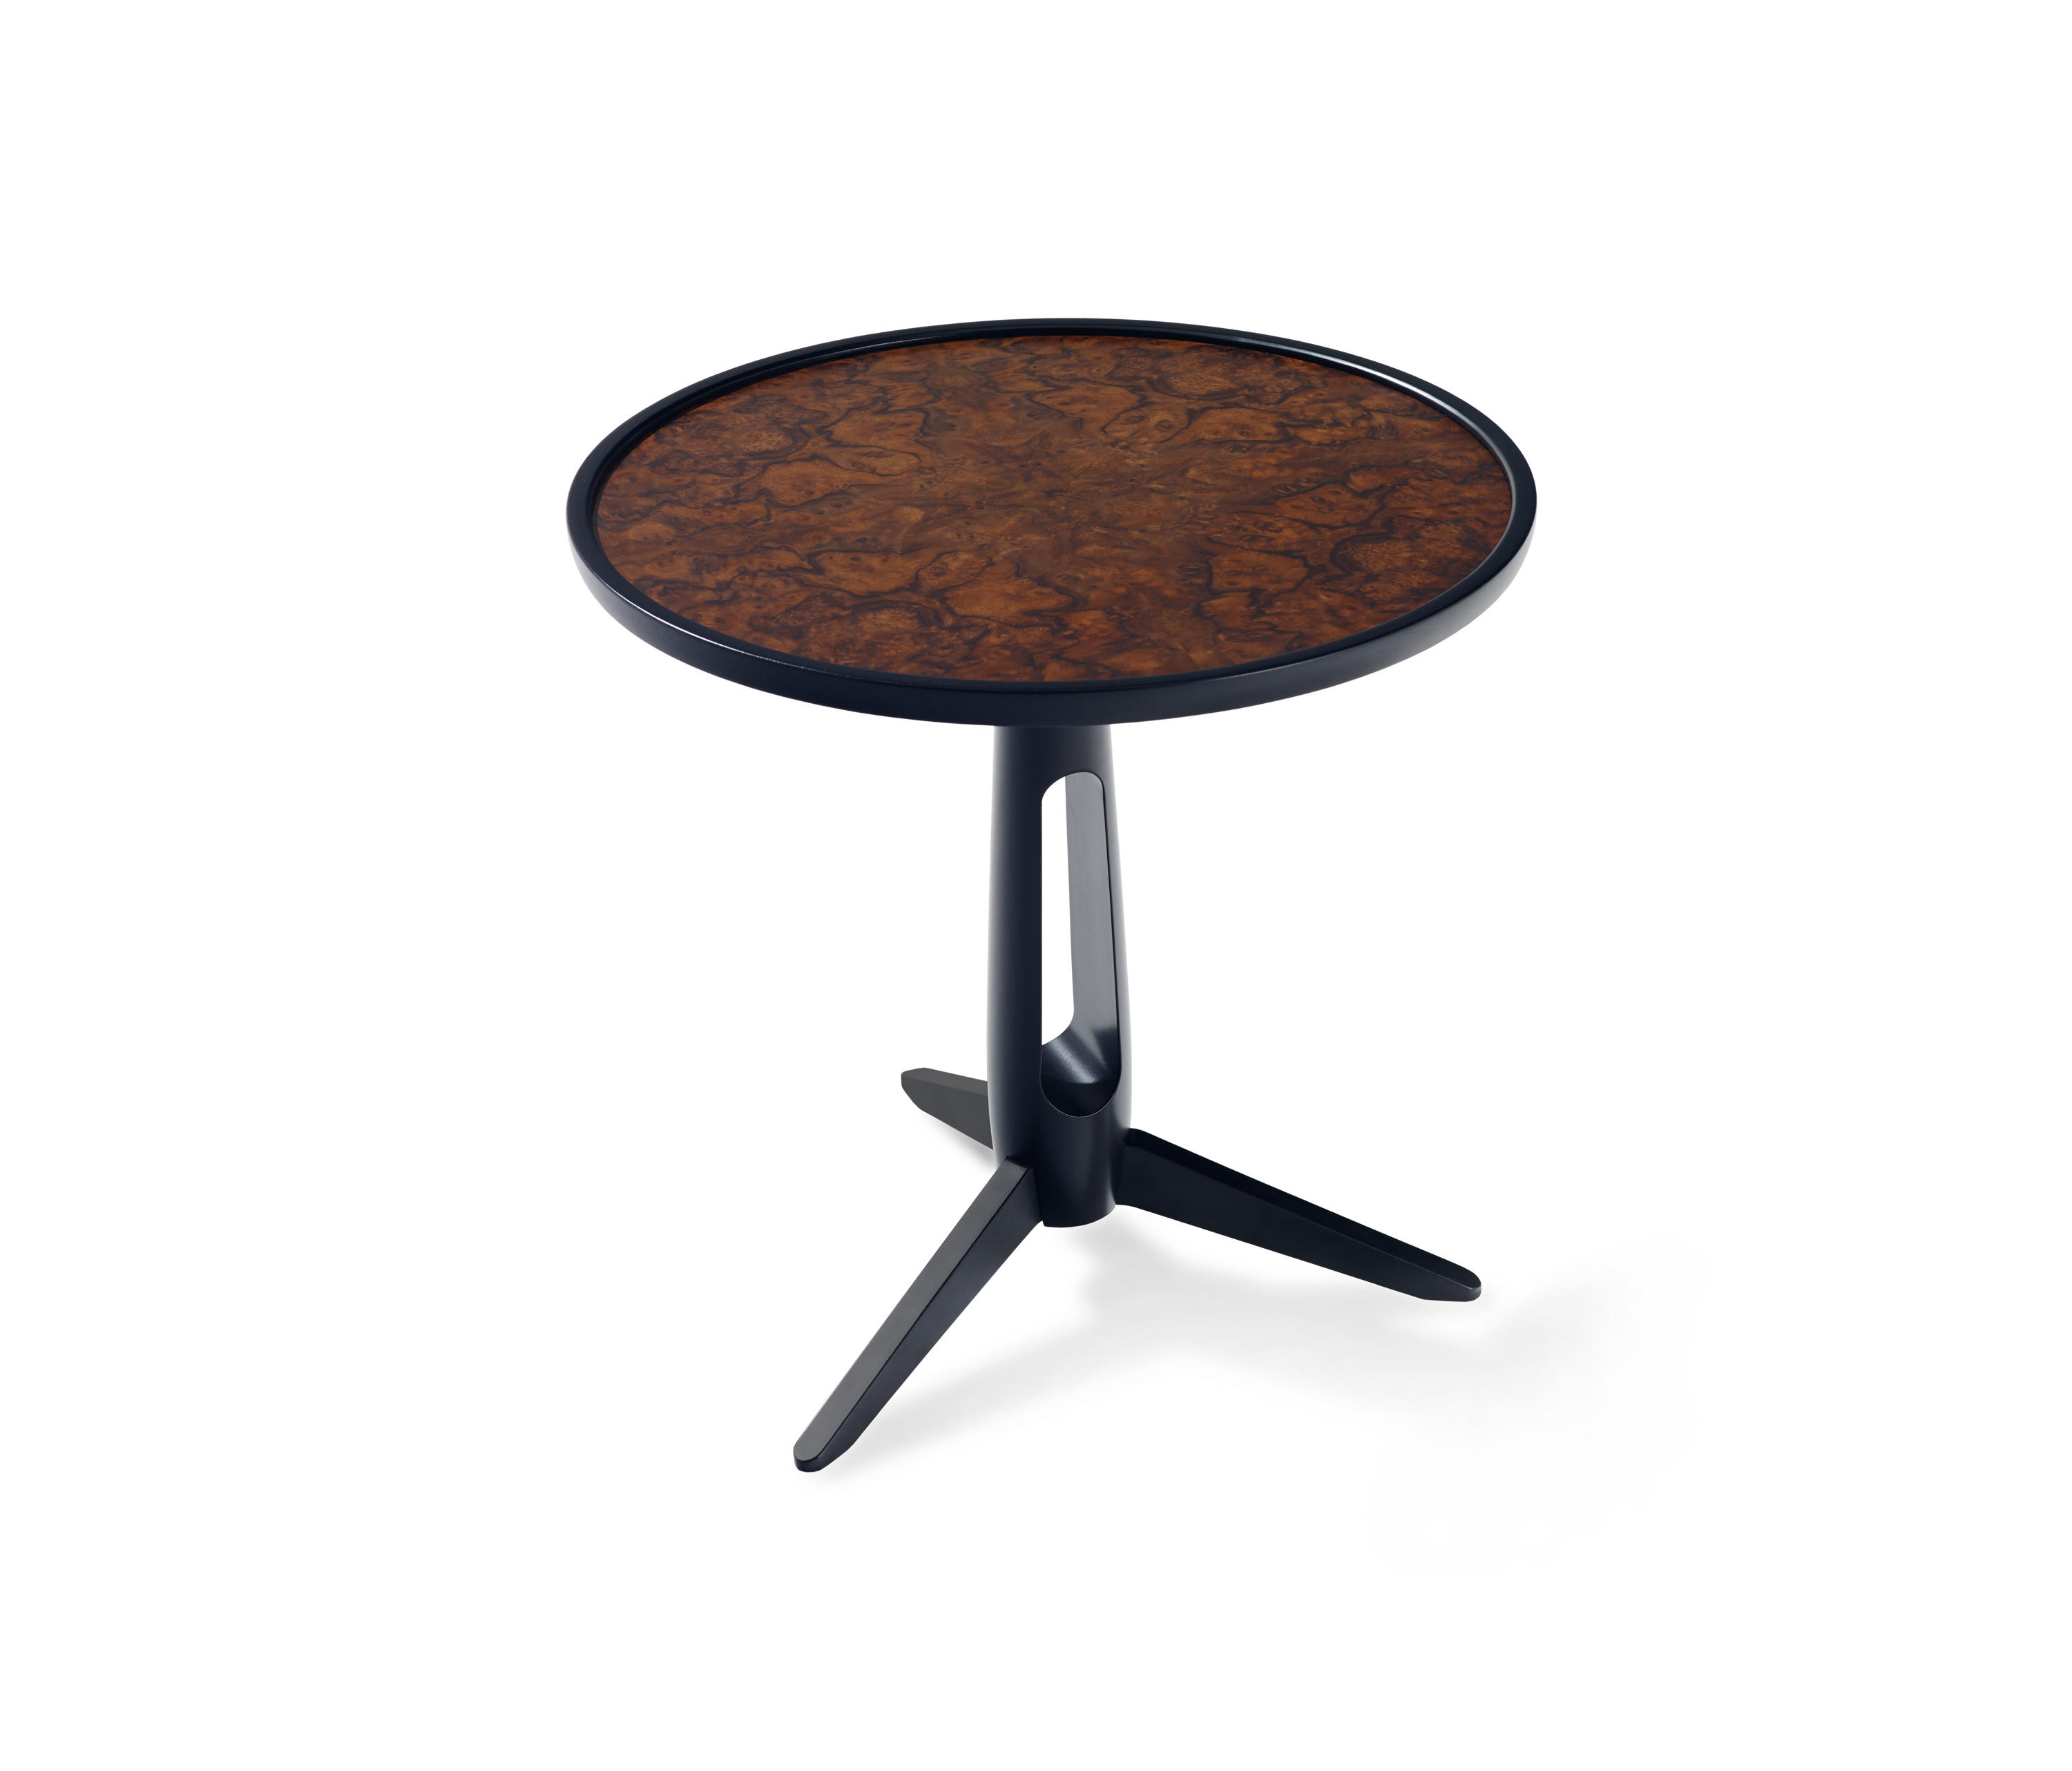 Captivating Santa Round Table Falkirk Sesigncorp. Little Round Table Sesigncorp